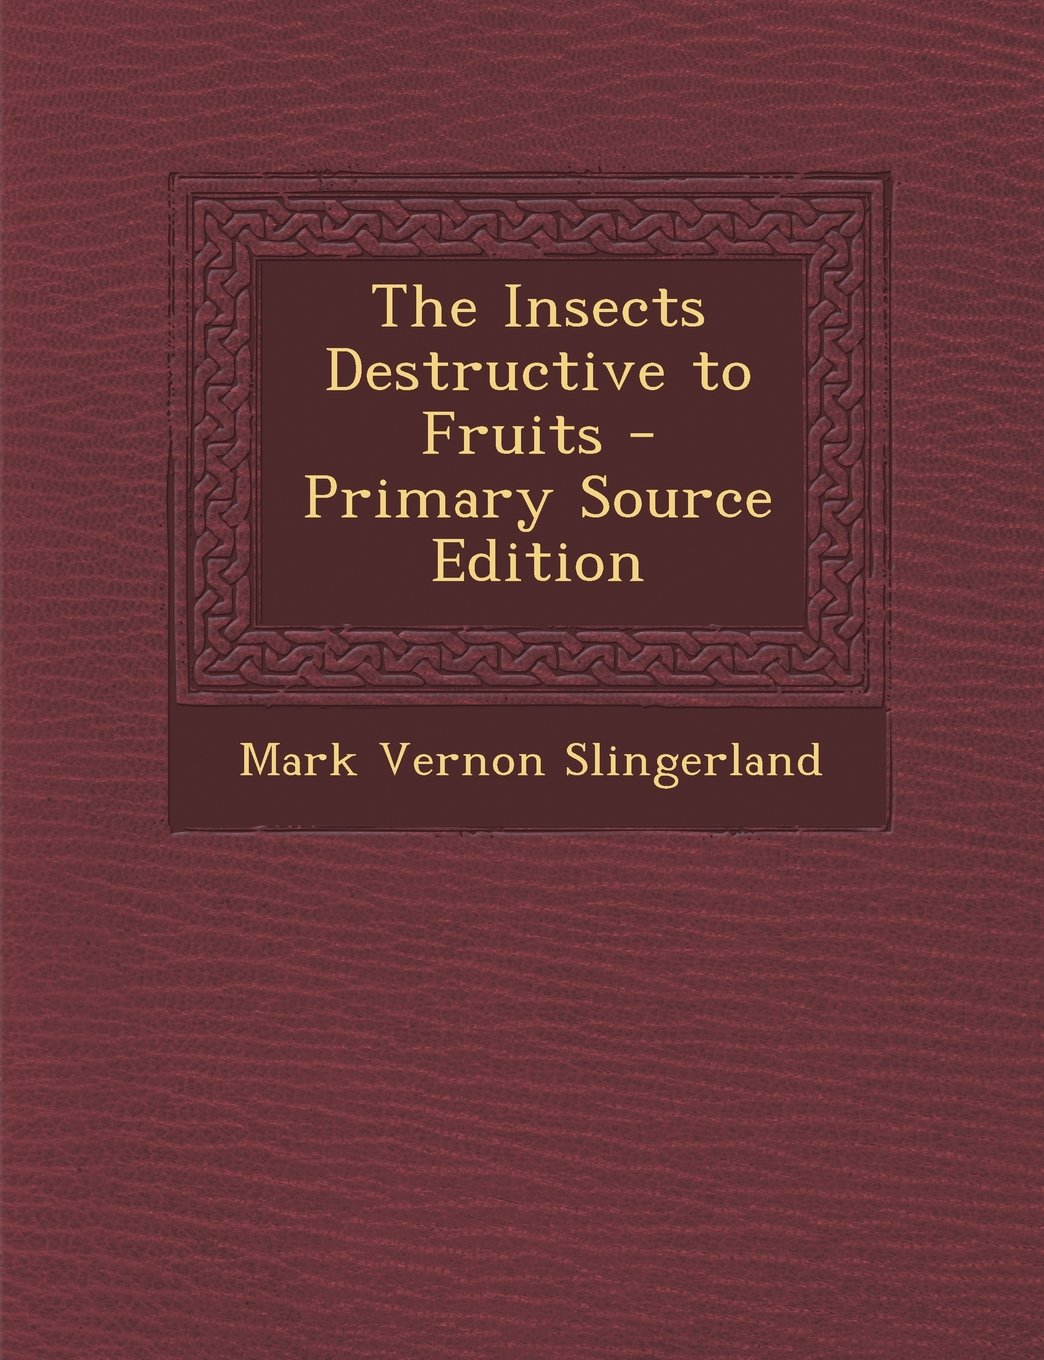 The Insects Destructive to Fruits ebook